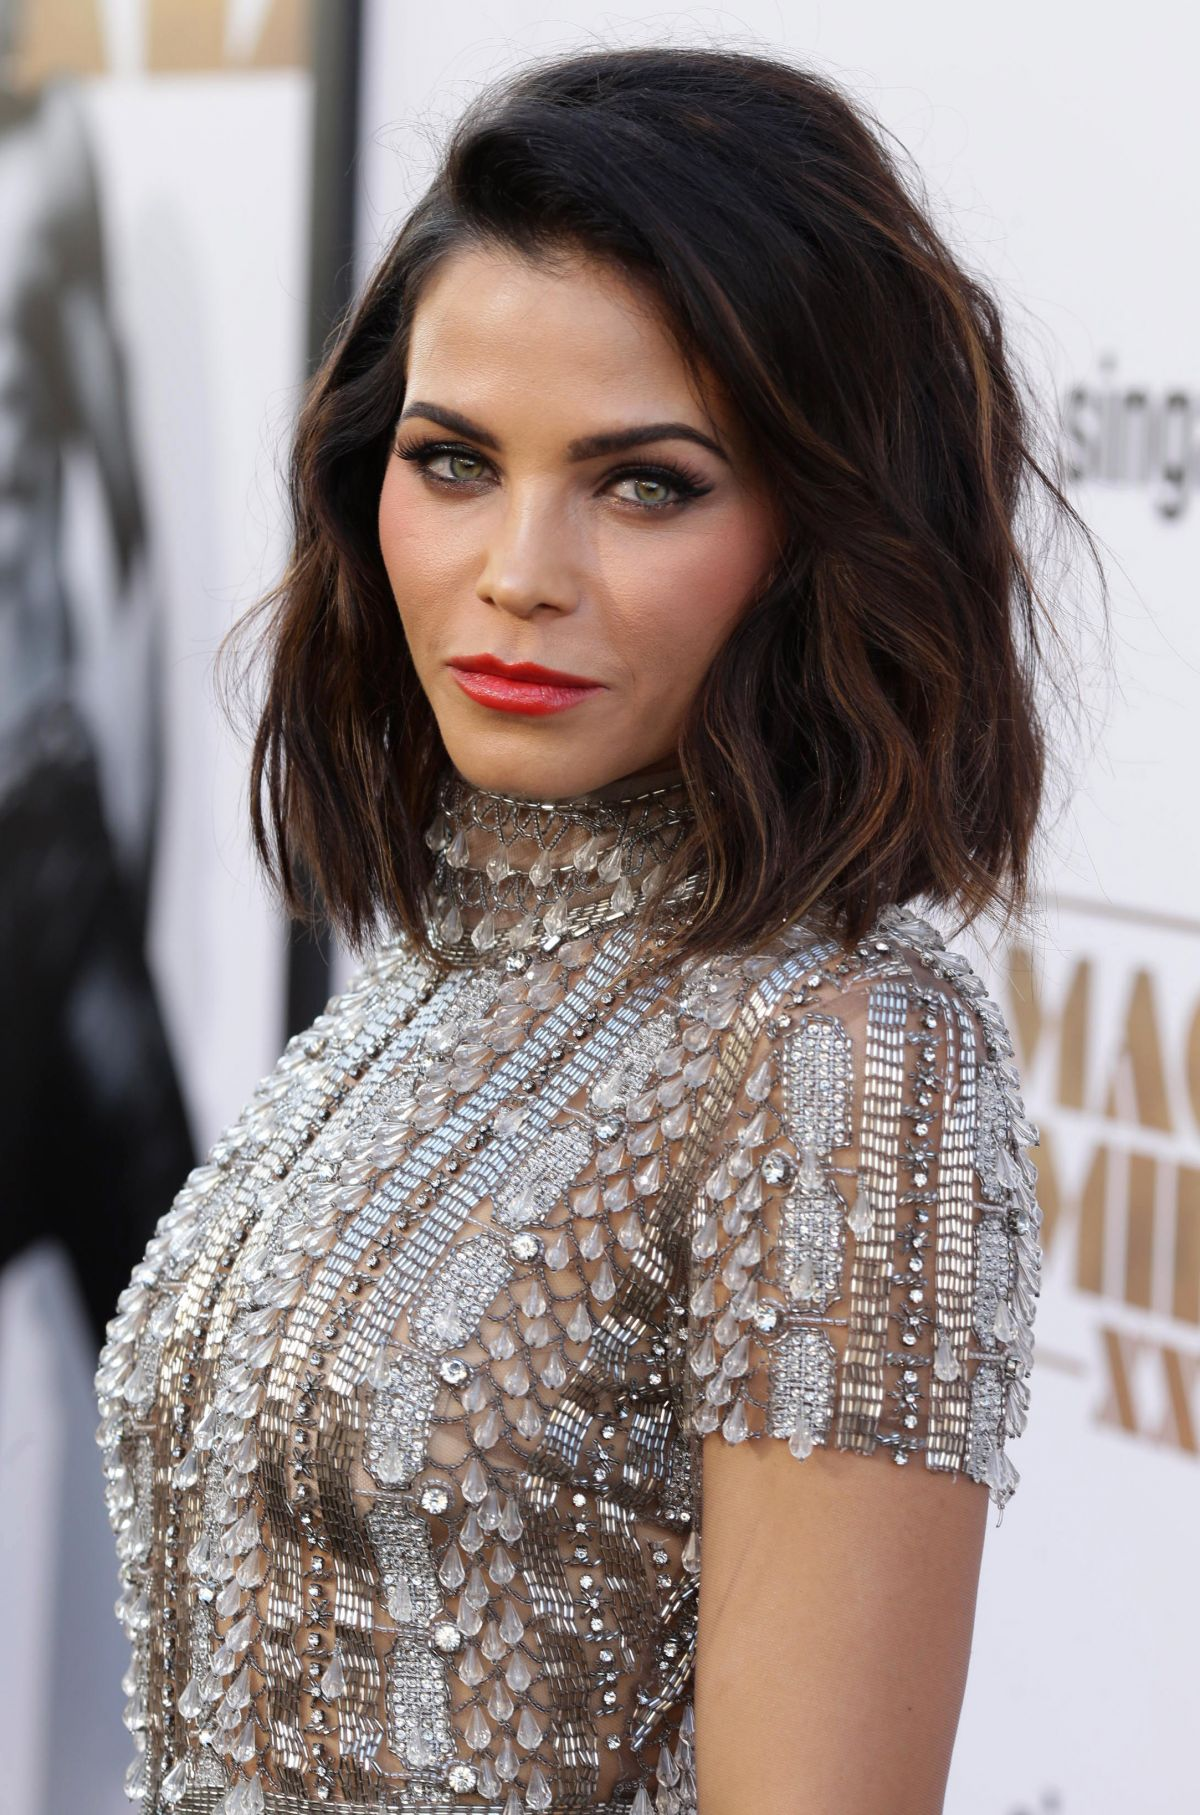 Jenna Dewan Tatum At Magic Mike XXL Premiere - Celebzz